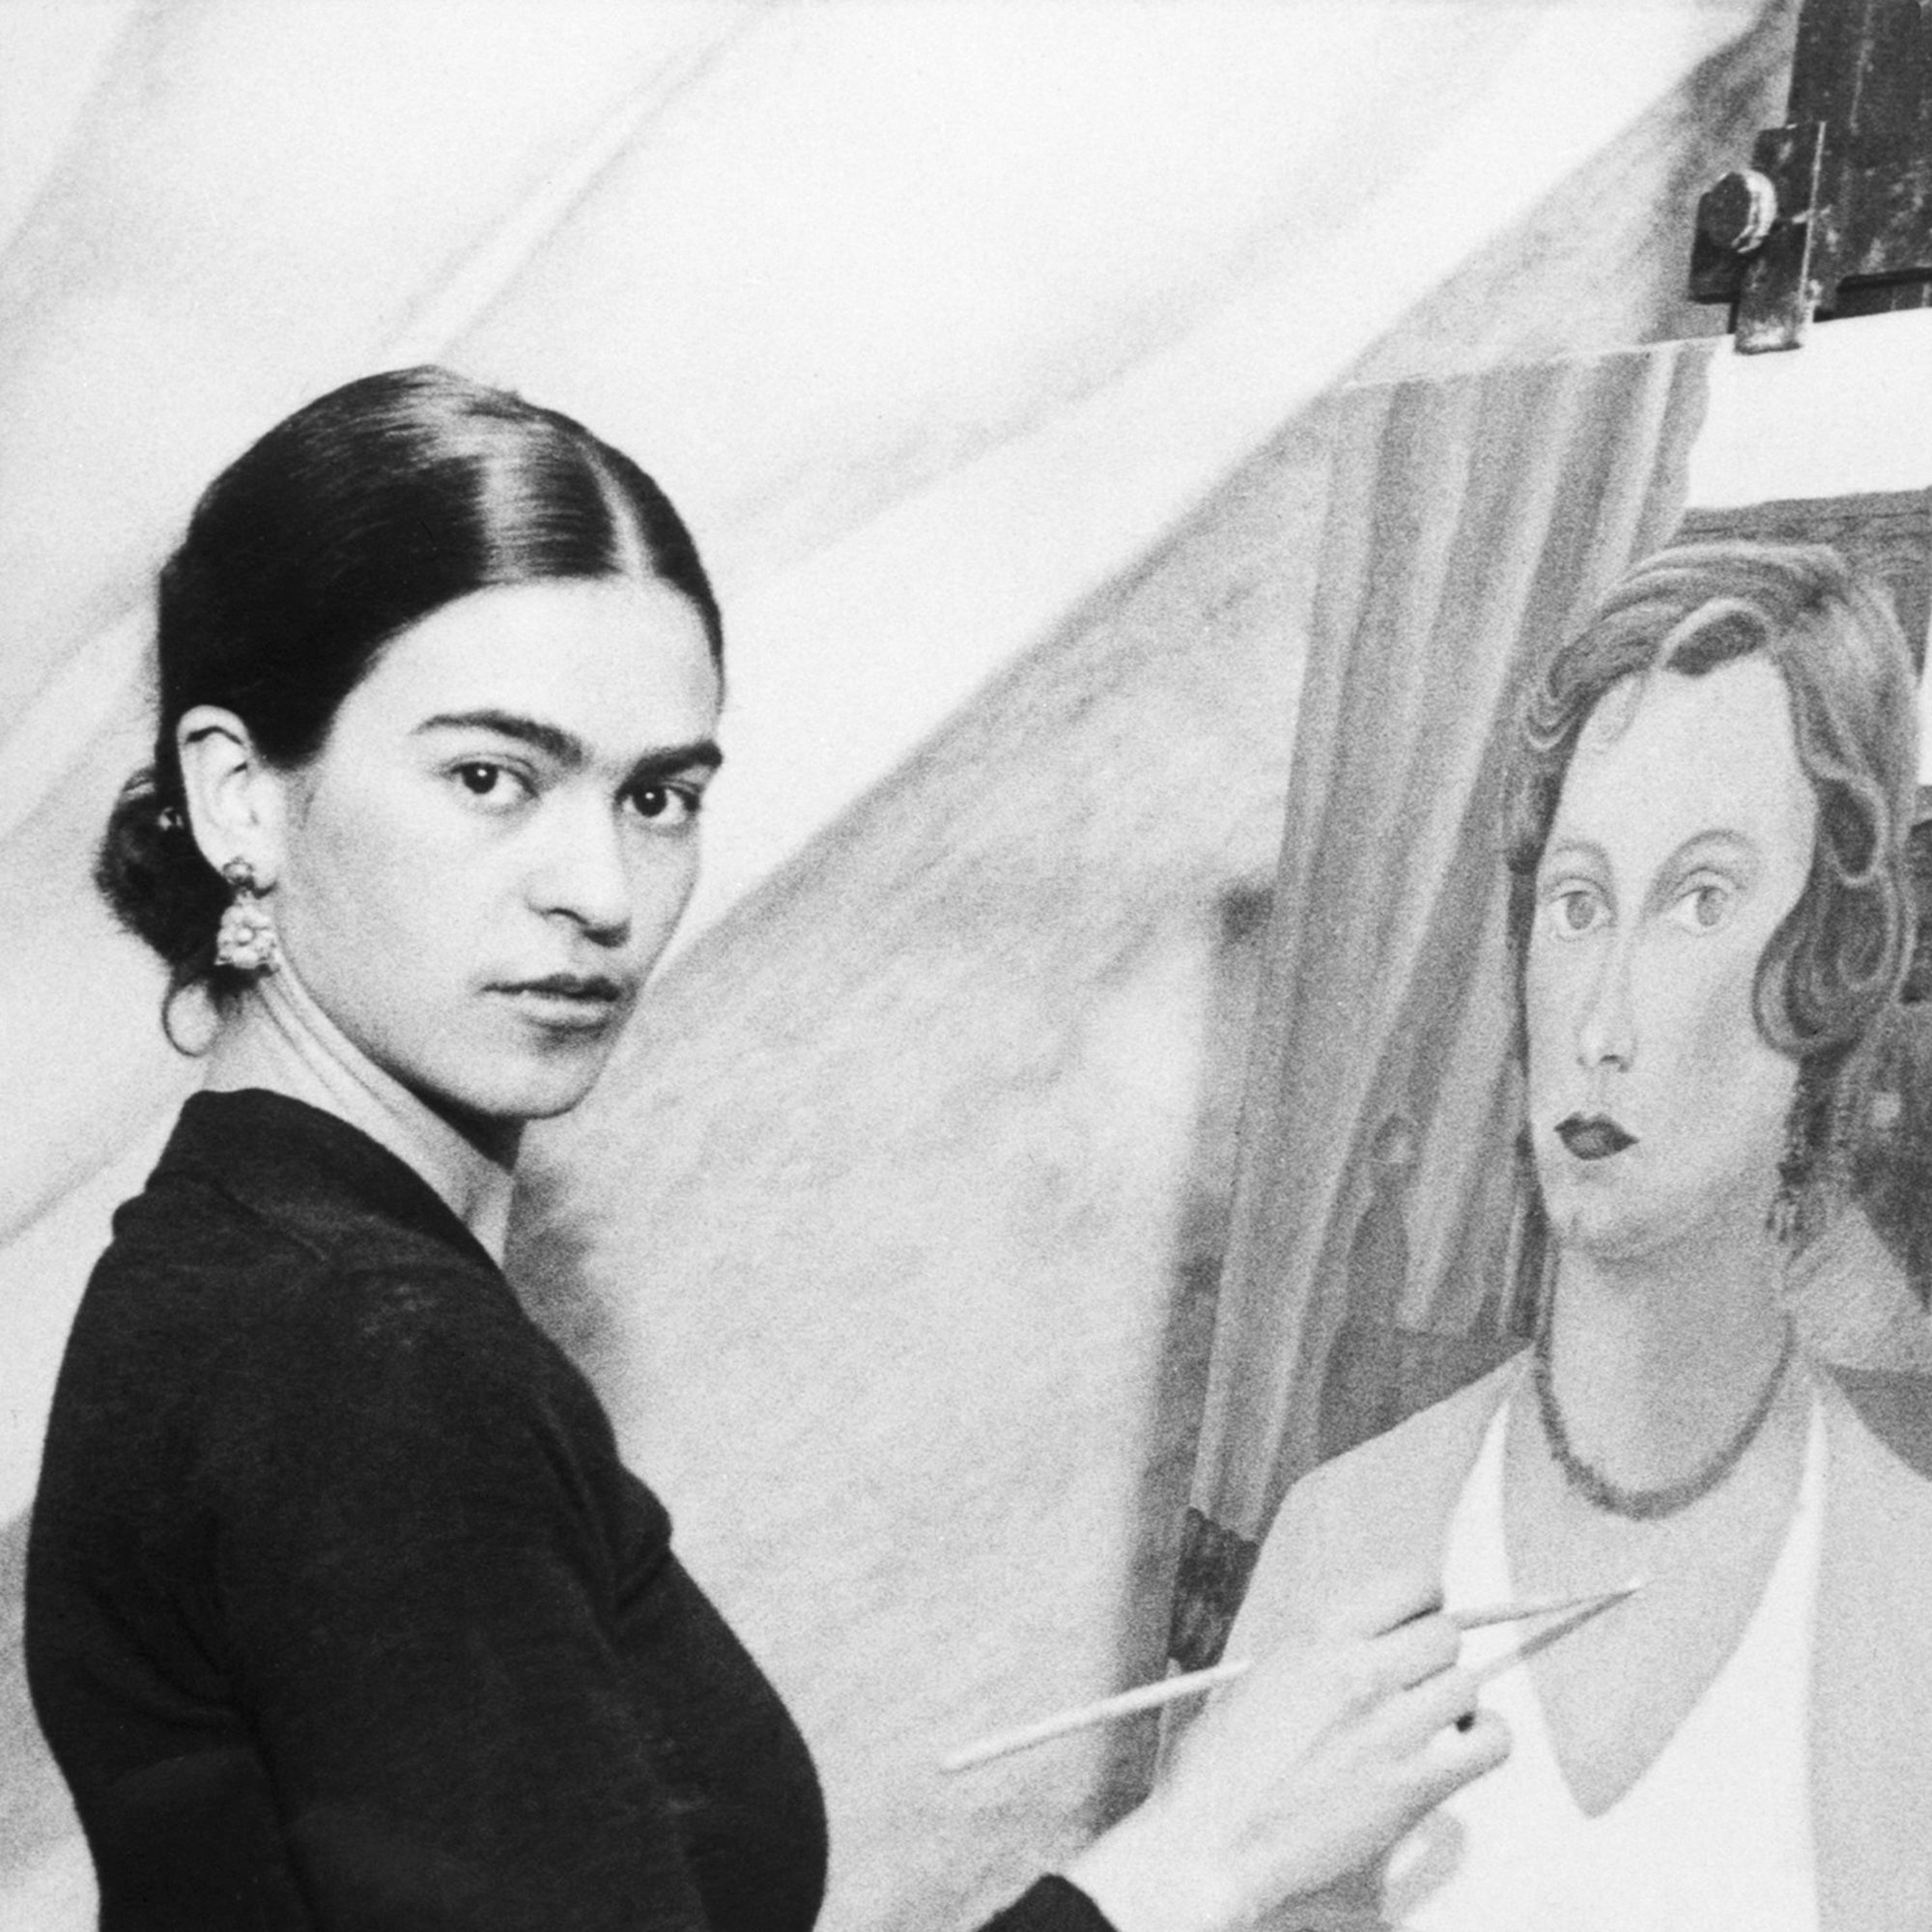 22 Jan 1931 --- Original caption: 1/22/1931- Even though her famous husband sits by and declines to comment on her art ambitions, Mrs. Diego Rivera, wife of the famous Mexican artist, can and does, do very passable portraits. Photo shows Mrs. Diego Rivera painting one now, and she is doing a mural for the San Francisco Stock Exchange, with one of her portraits of a San Francisco society woman. --- Image by © Bettmann/CORBIS